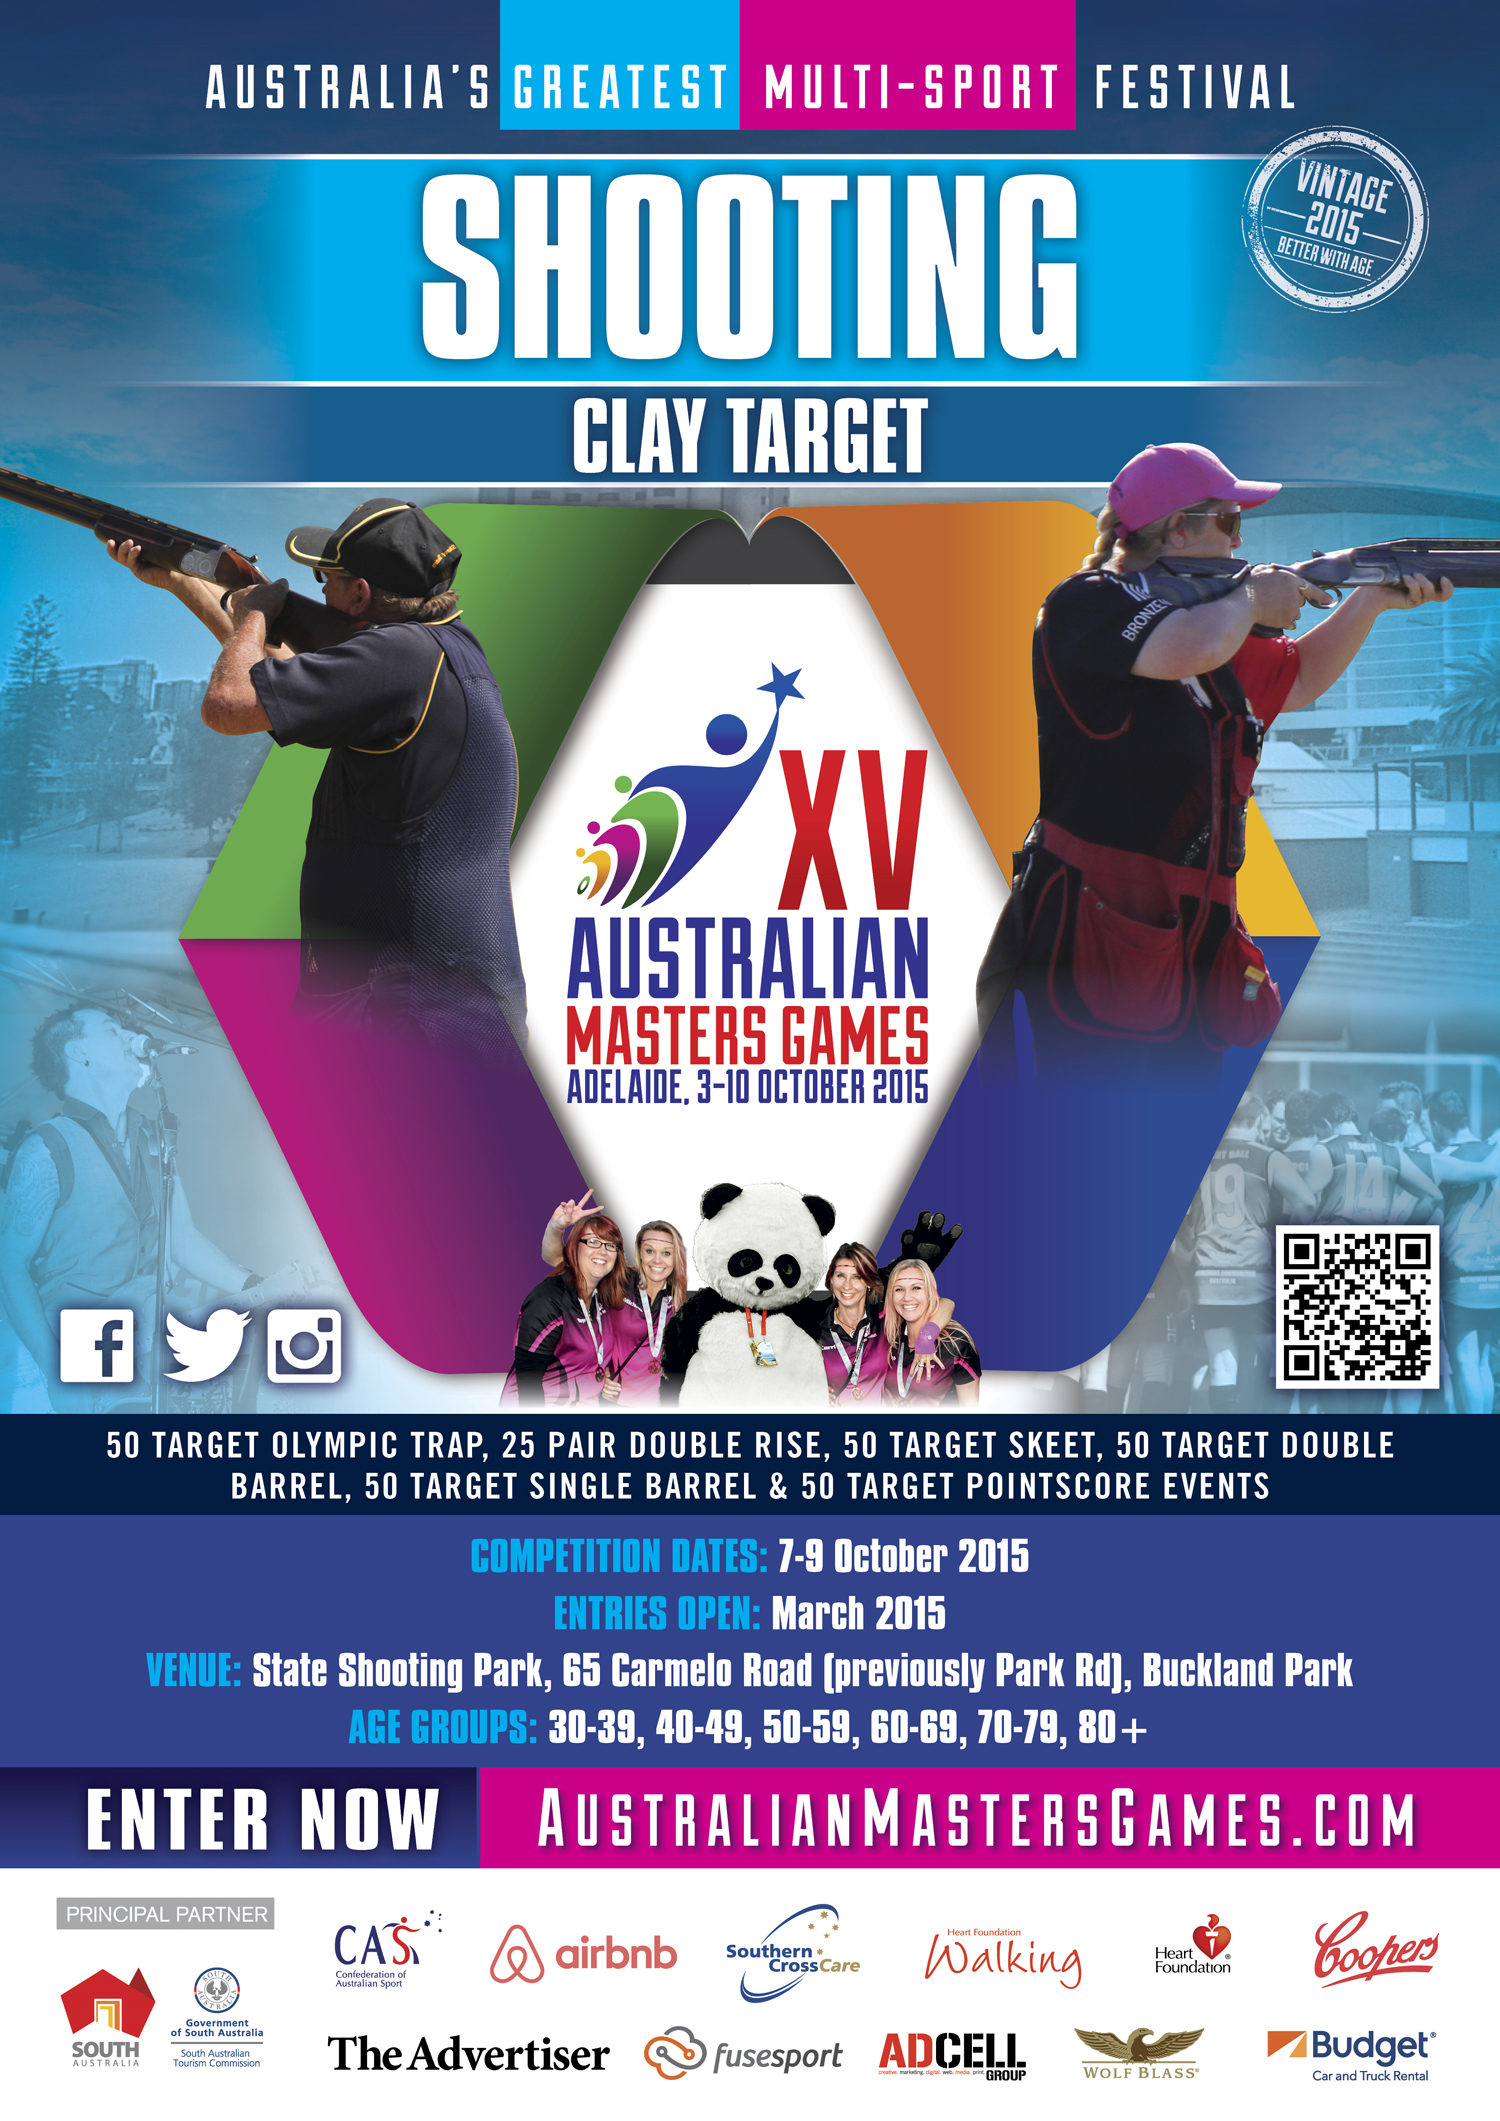 Masters Games Sport Specific Poster for Clay Target Shooting